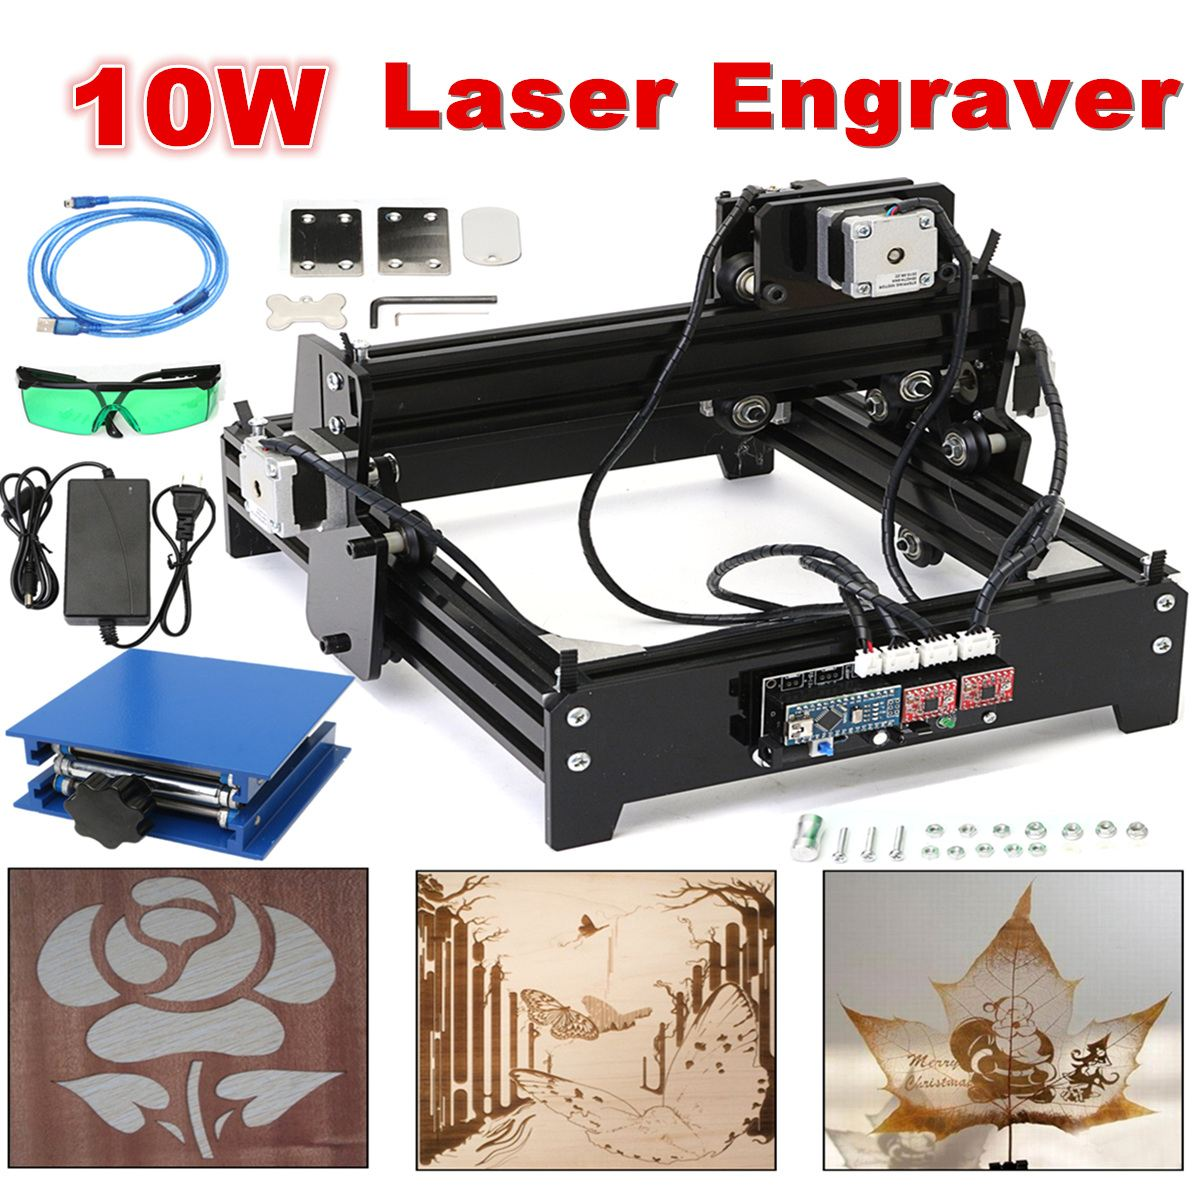 20 x 14 cm Engraving Area 10W USB Desktop Metal Stone Wood CNC Laser Engraver Marking Engraving Machine + Protective Glasses blue laser head engraving module wood marking diode 2 5w glasses circuit board for engraver wood metal plastic carving mayitr